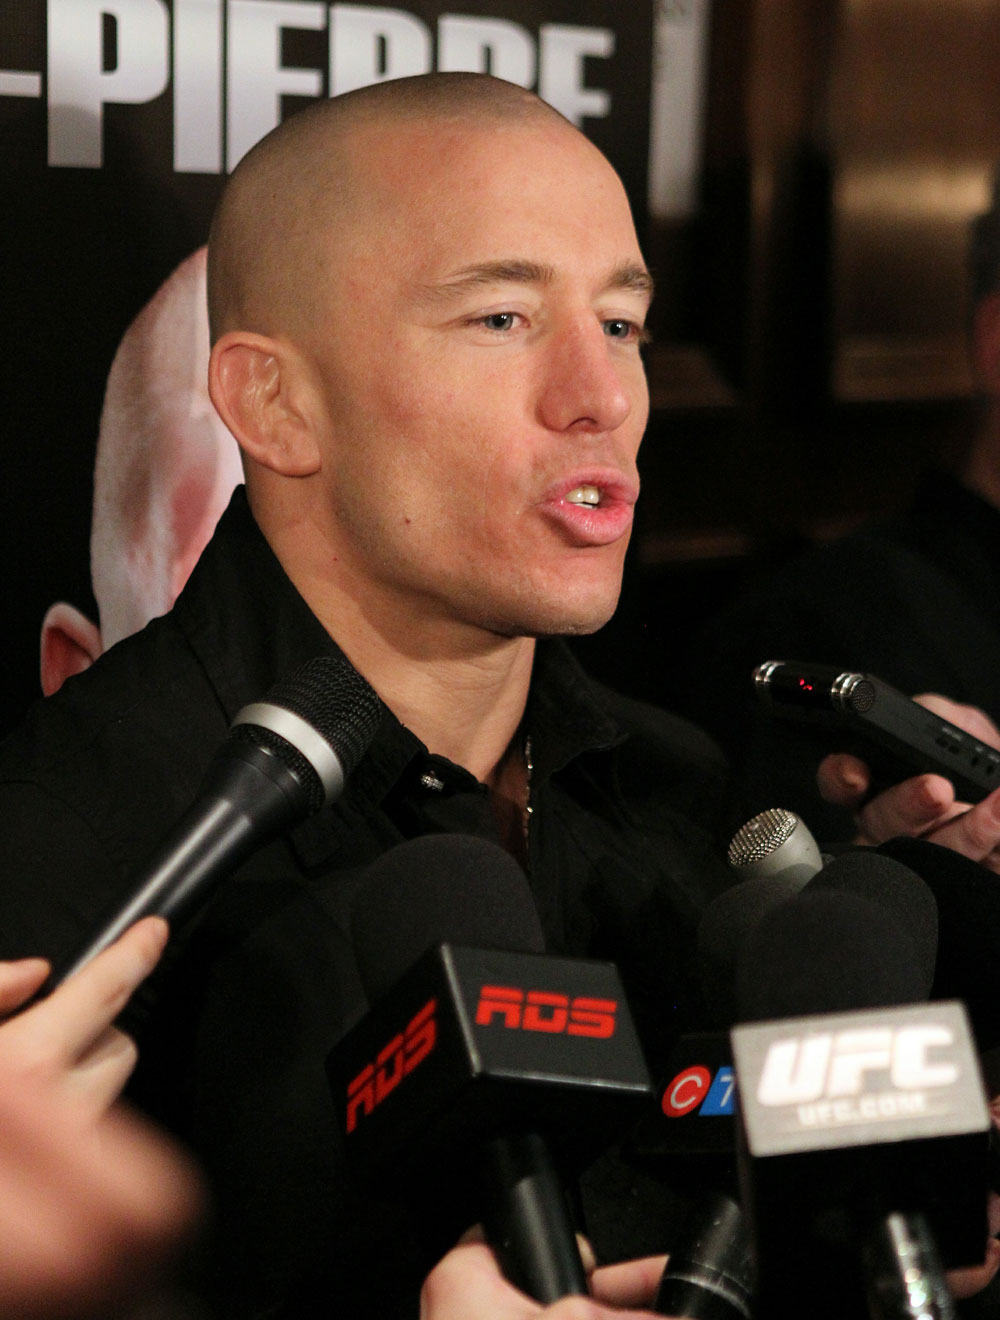 UFC Welterweight Champion Georges St-Pierre answers questions from the media at the UFC 124 open workouts at the Marriott Chateau Champlain in on December 8, 2010 in Montreal, Quebec, Canada.